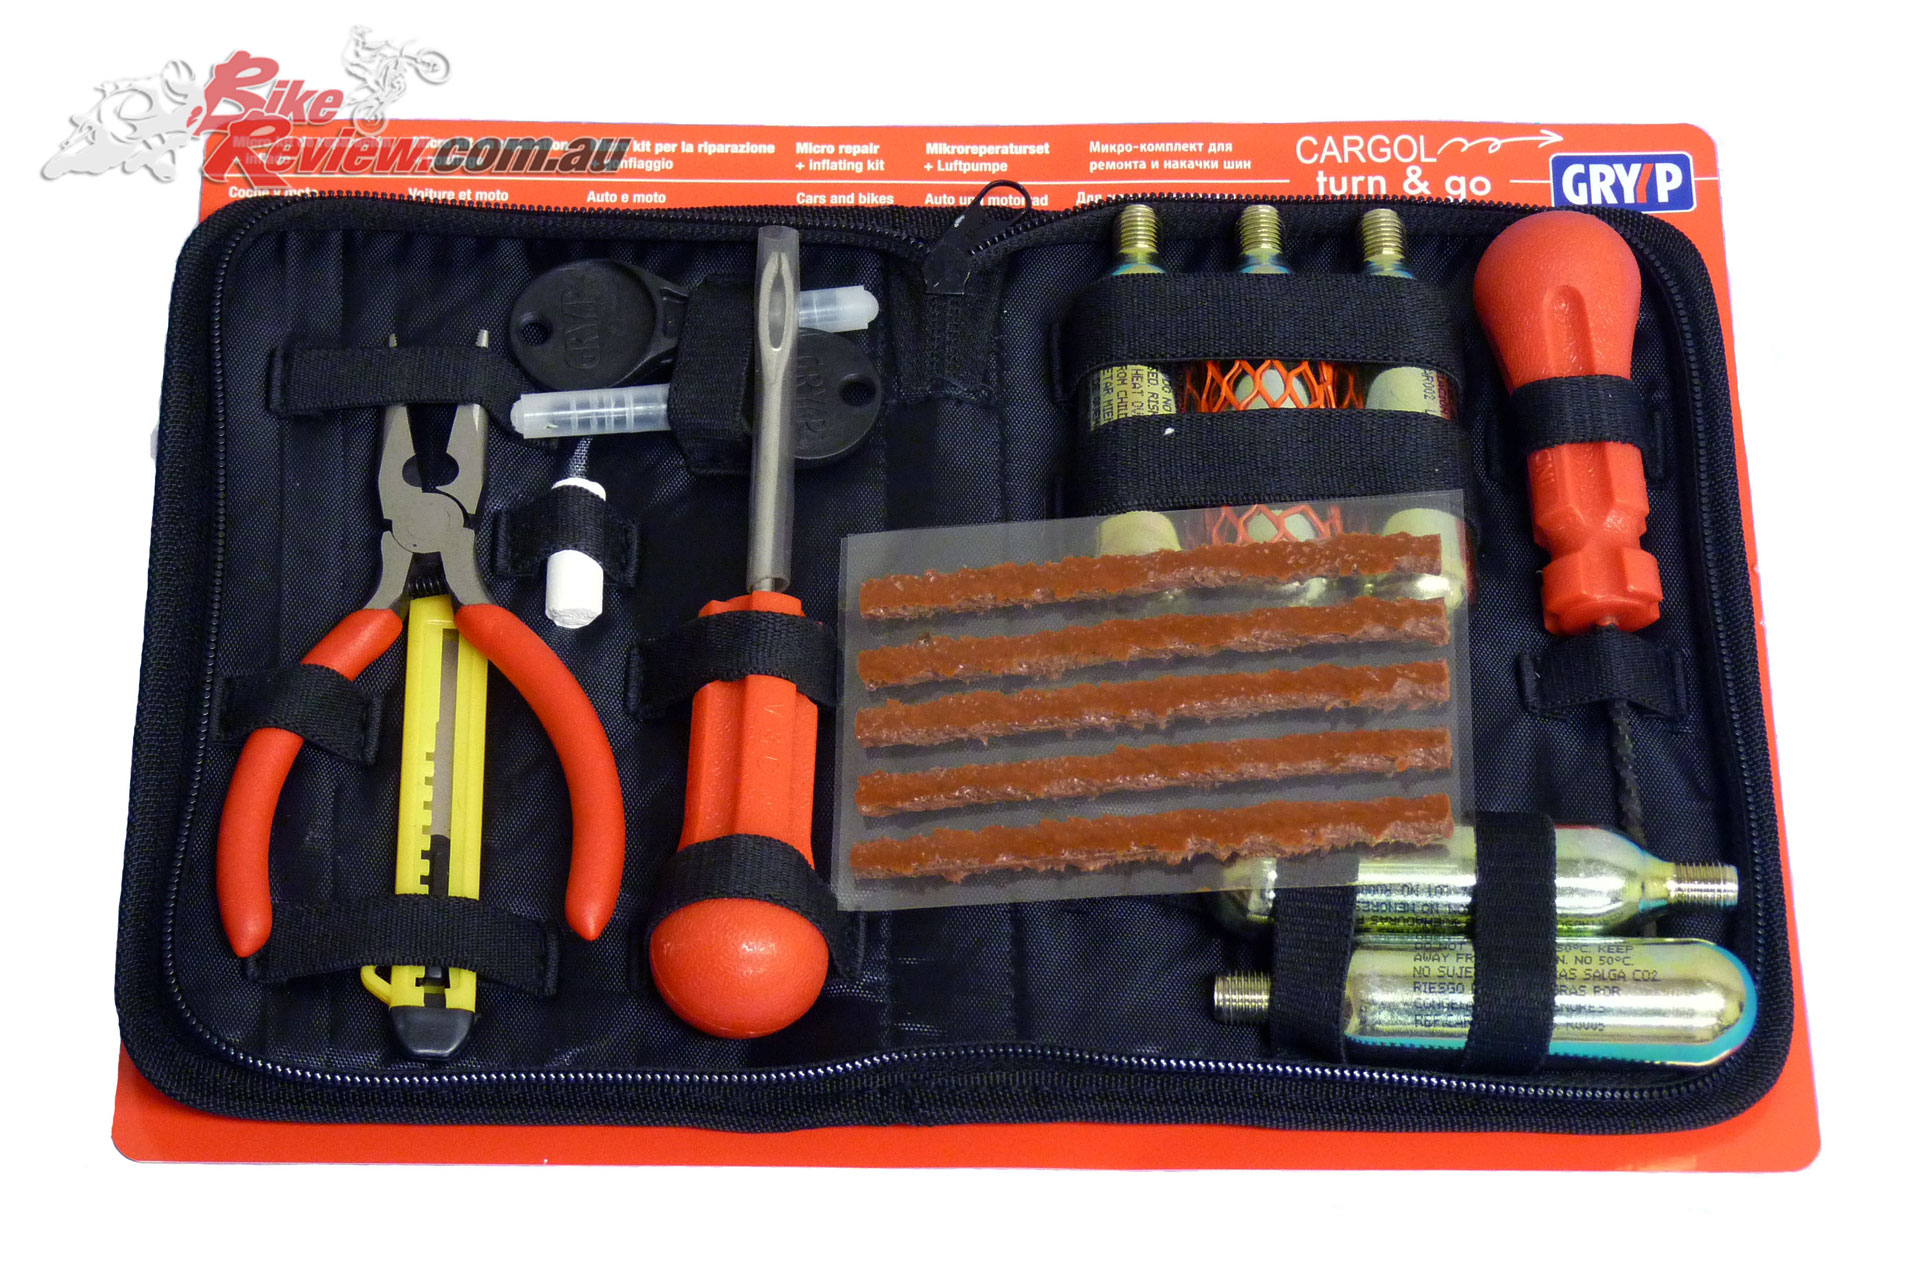 Cargol 'Turn & GO' Tyre Repair Kit from Gryyp